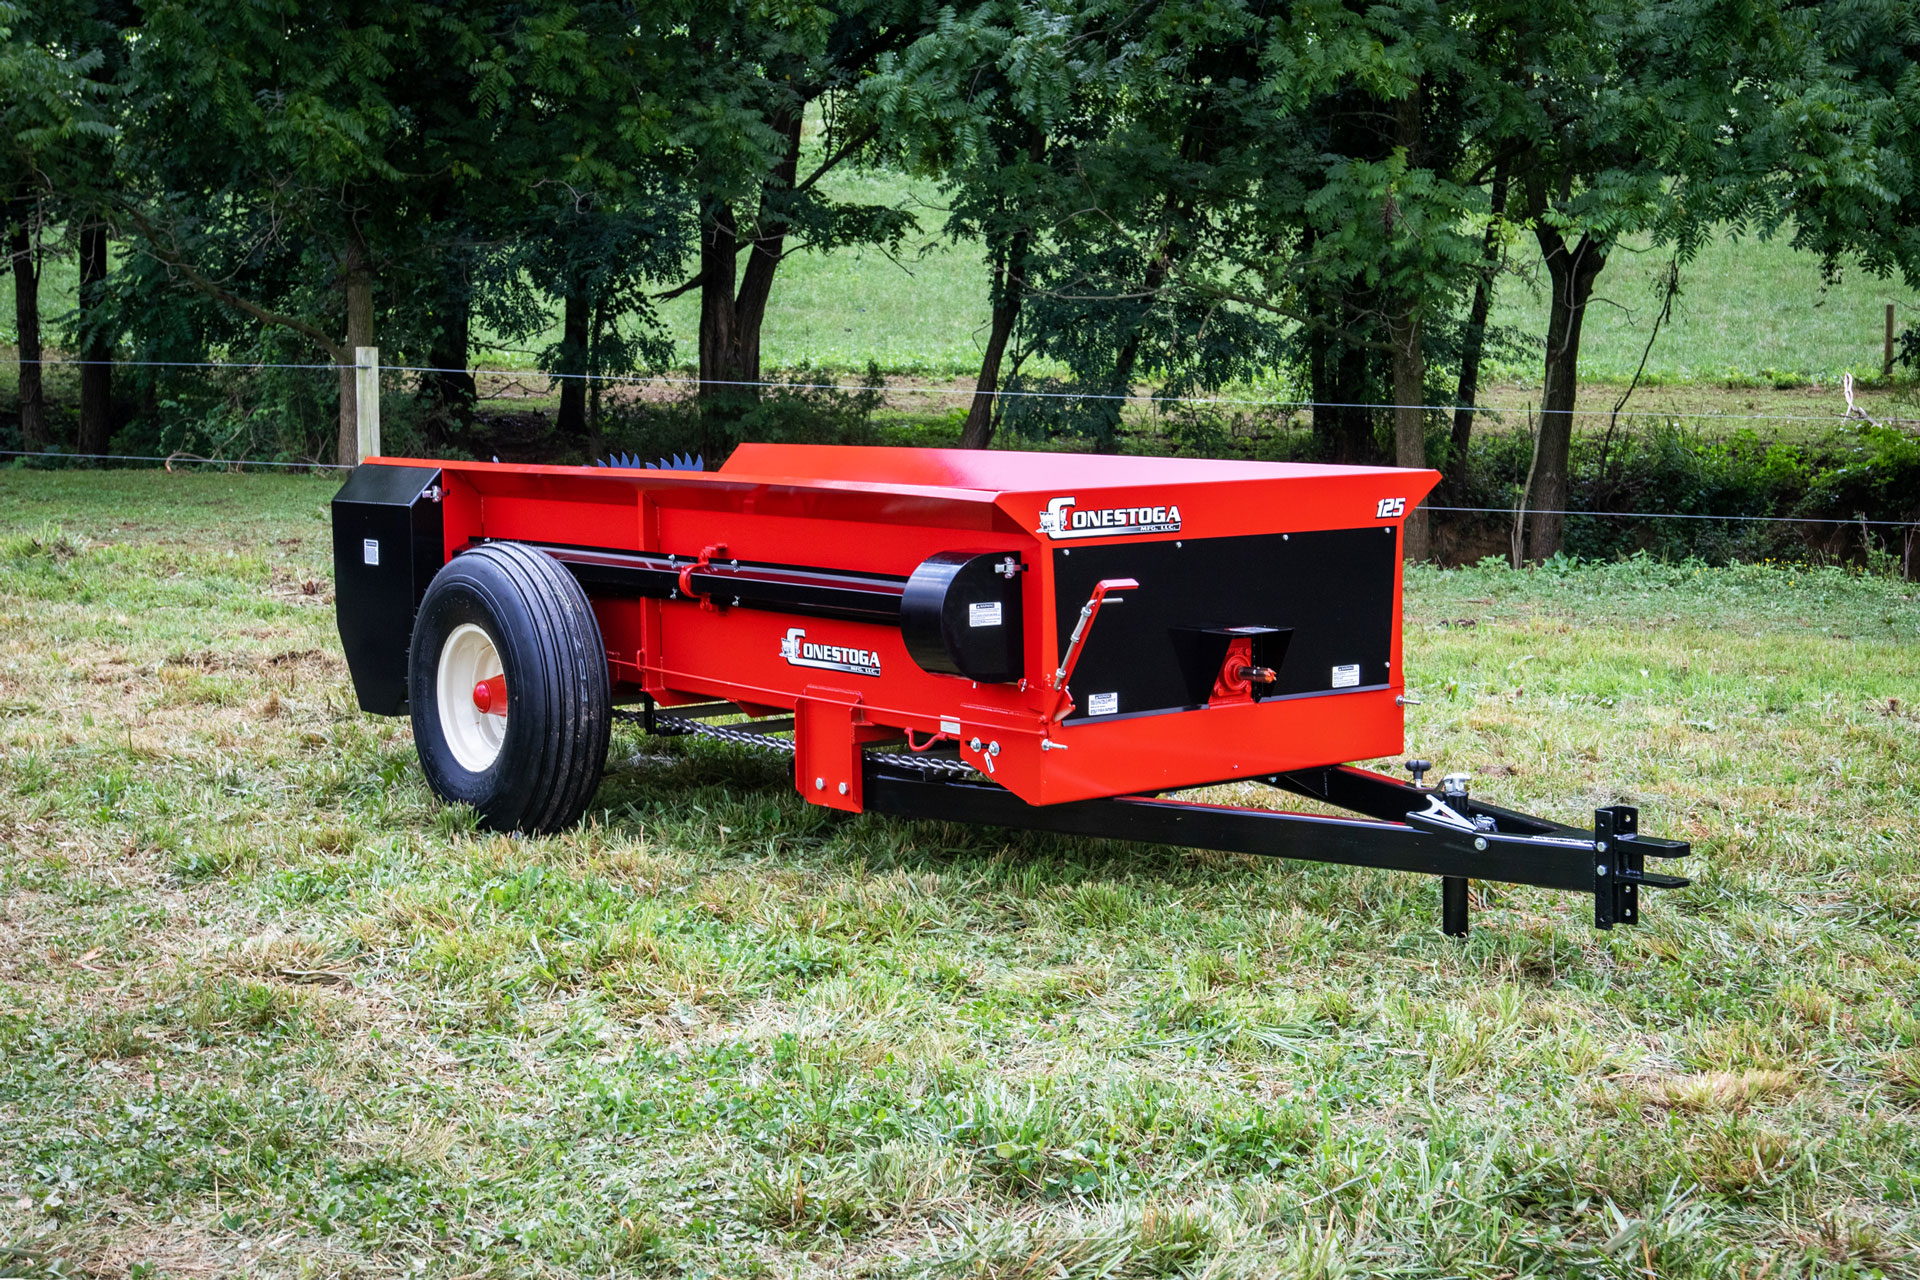 PTO tow behind manure spreader from conestoga manure spreaders.